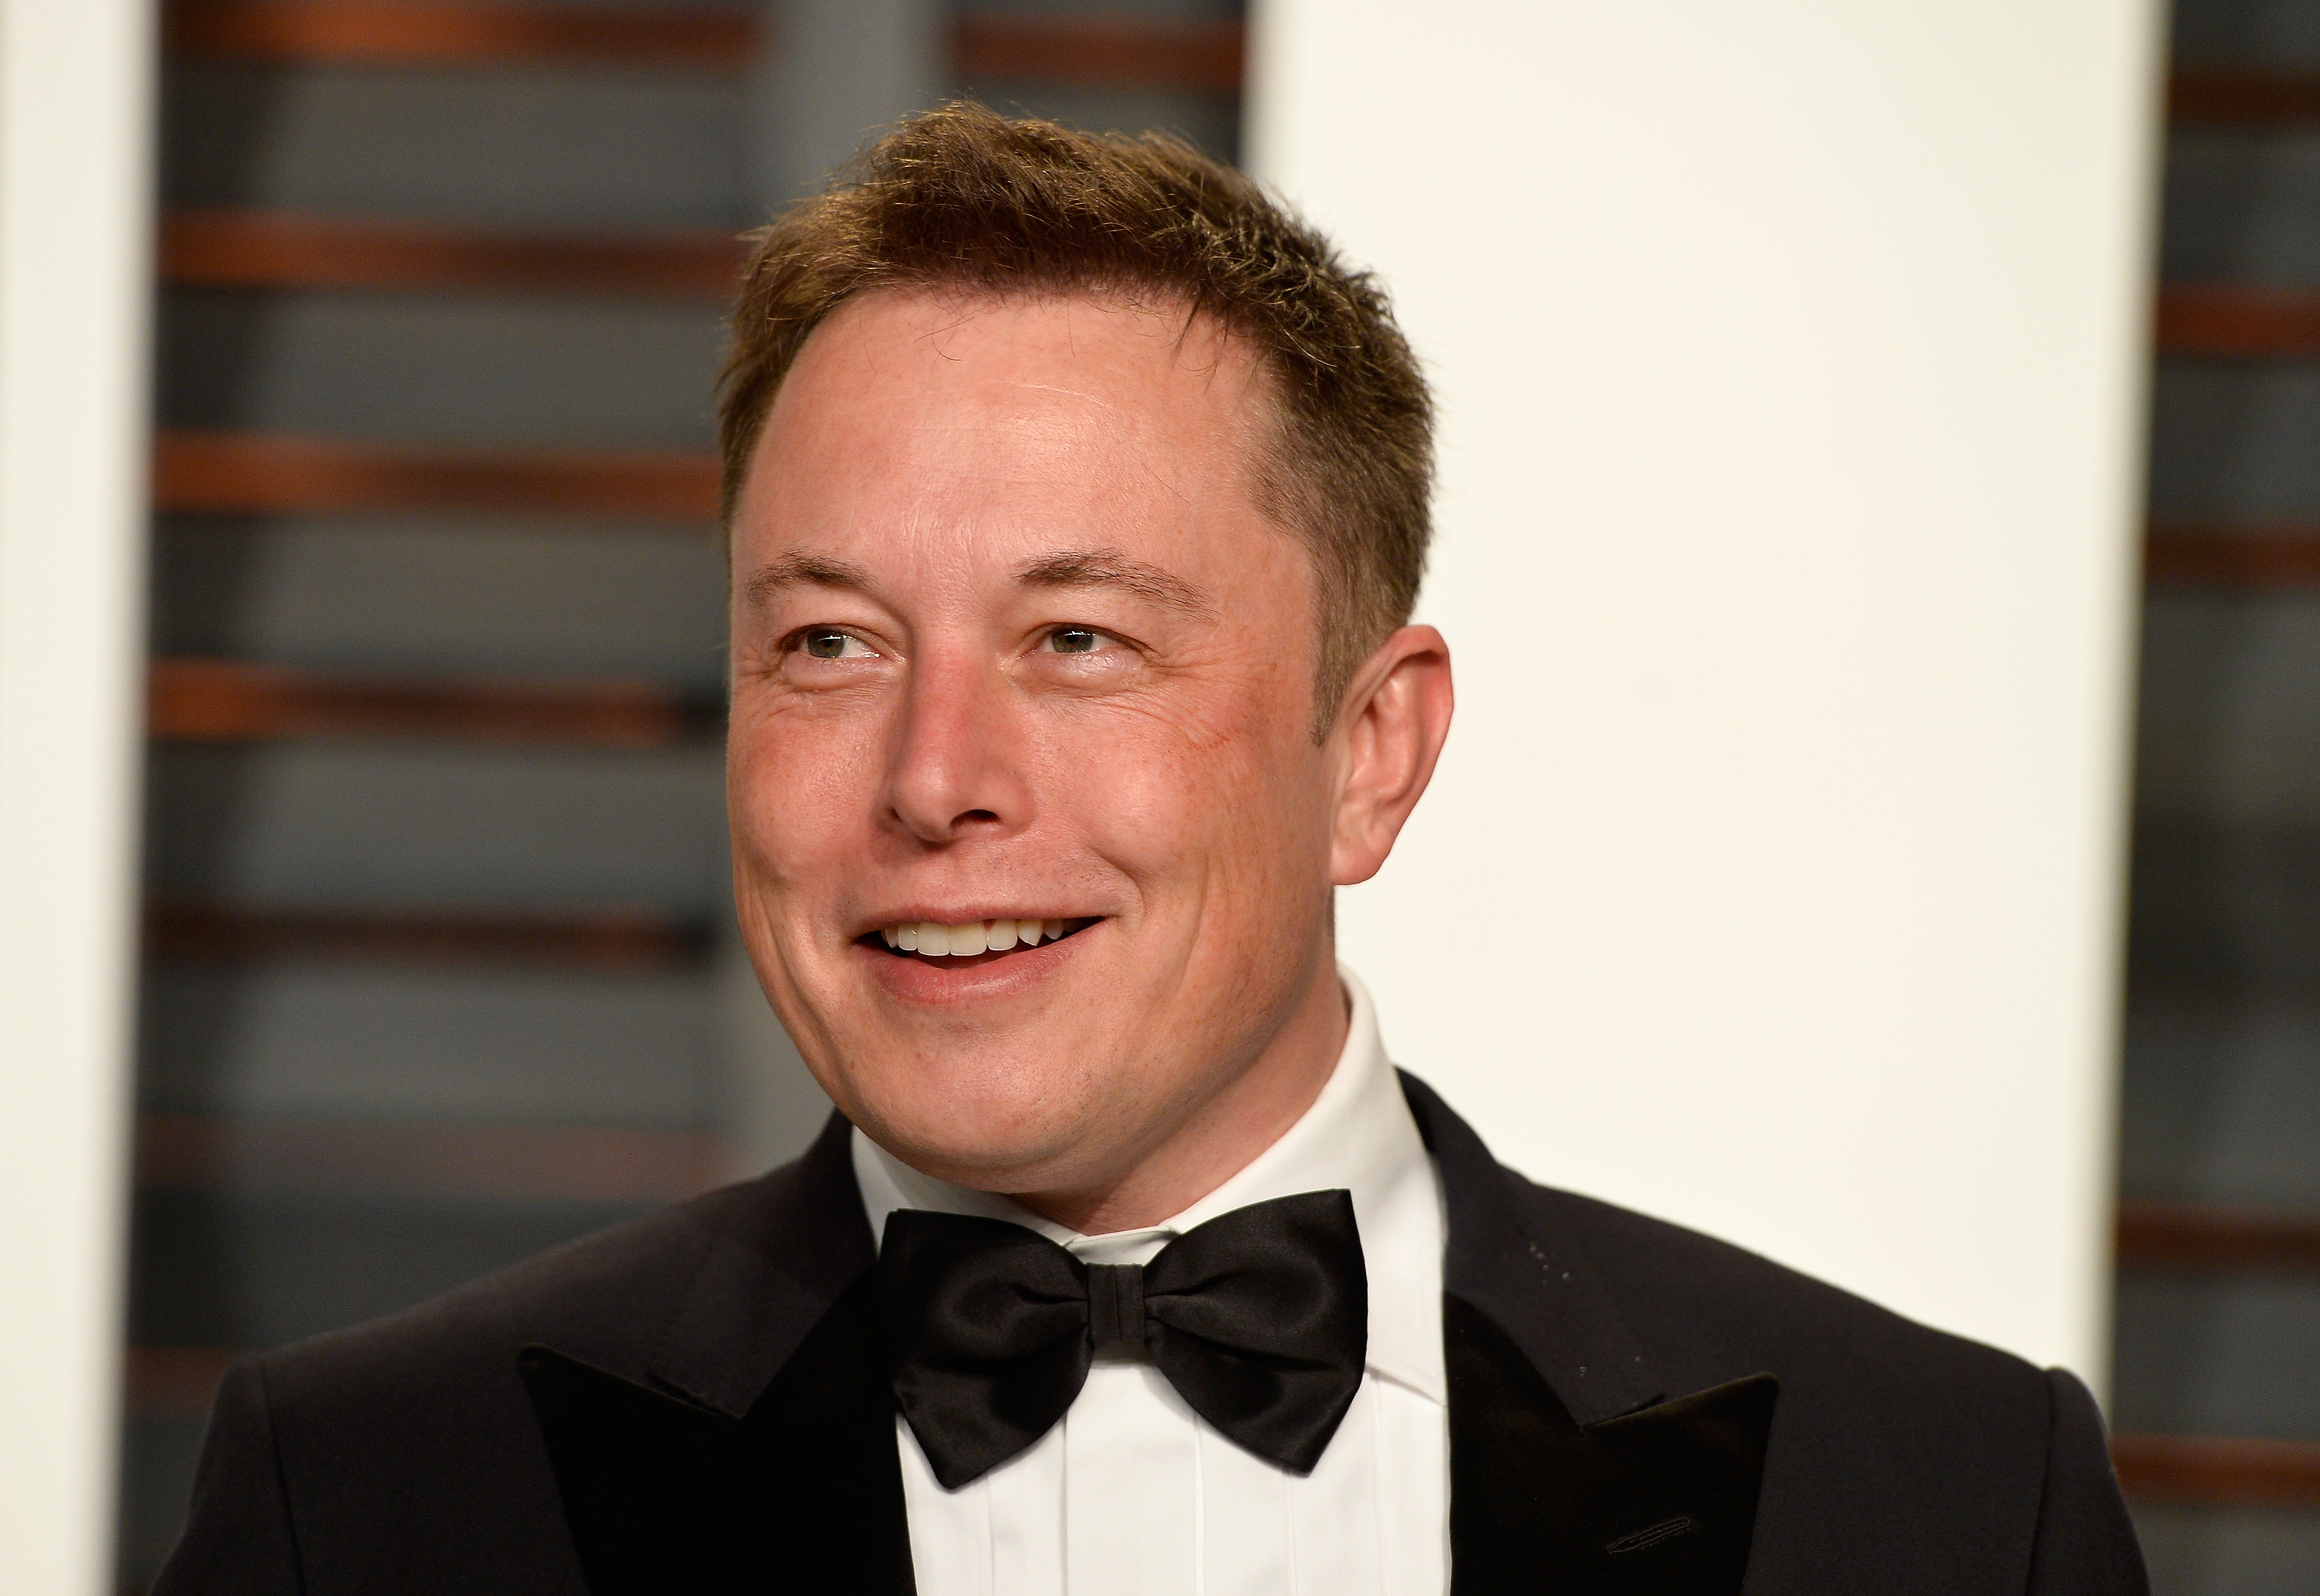 Technology Management Image: Why Did Elon Musk Ask To Meet Johnny Depp's Ex Amber Heard